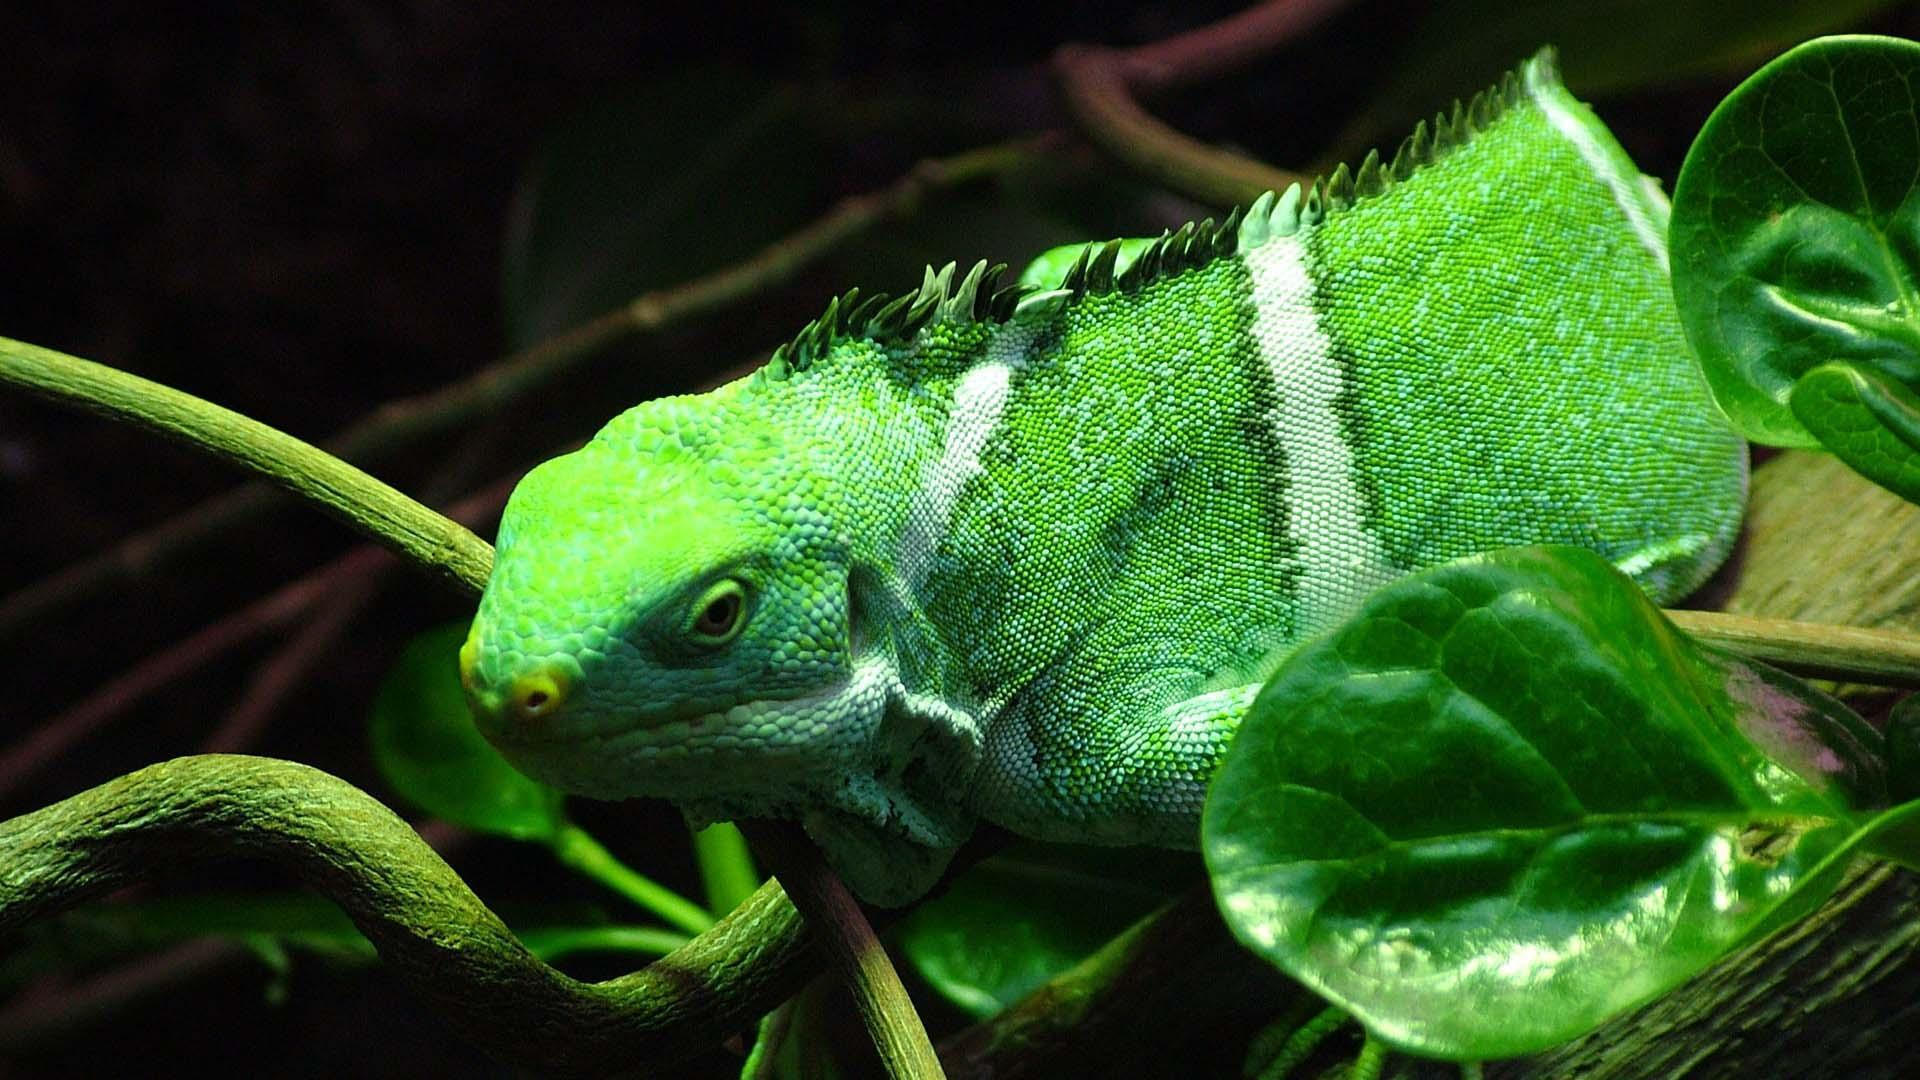 Green Iguana wallpapers HD